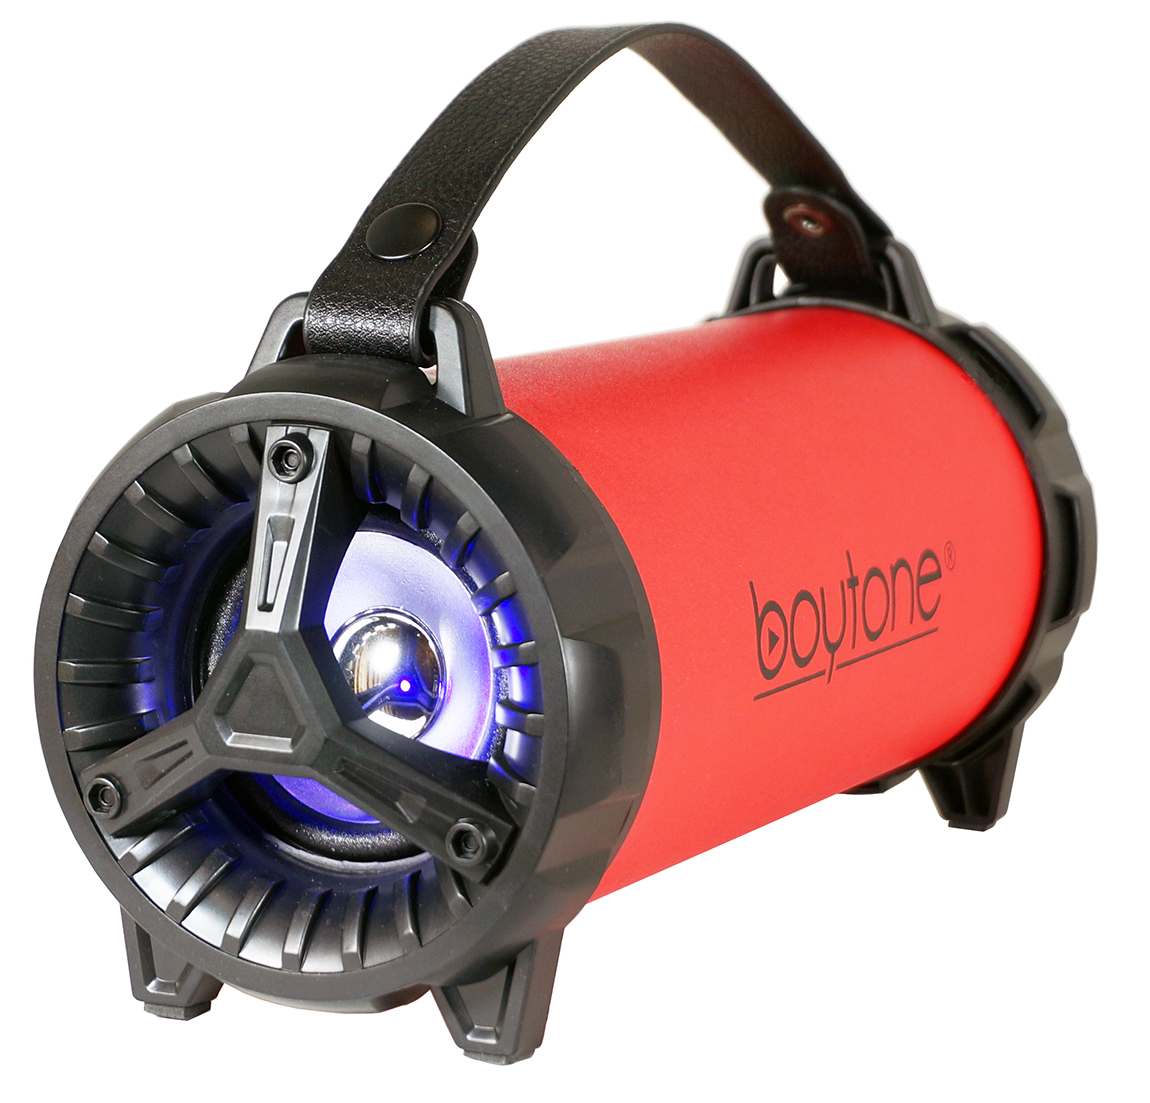 Boytone BT-40RD Portable Bluetooth Indoor/Outdoor Speaker 2.1 Hi-Fi Cylinder Loud Speaker with Built-in 2x3 Sub